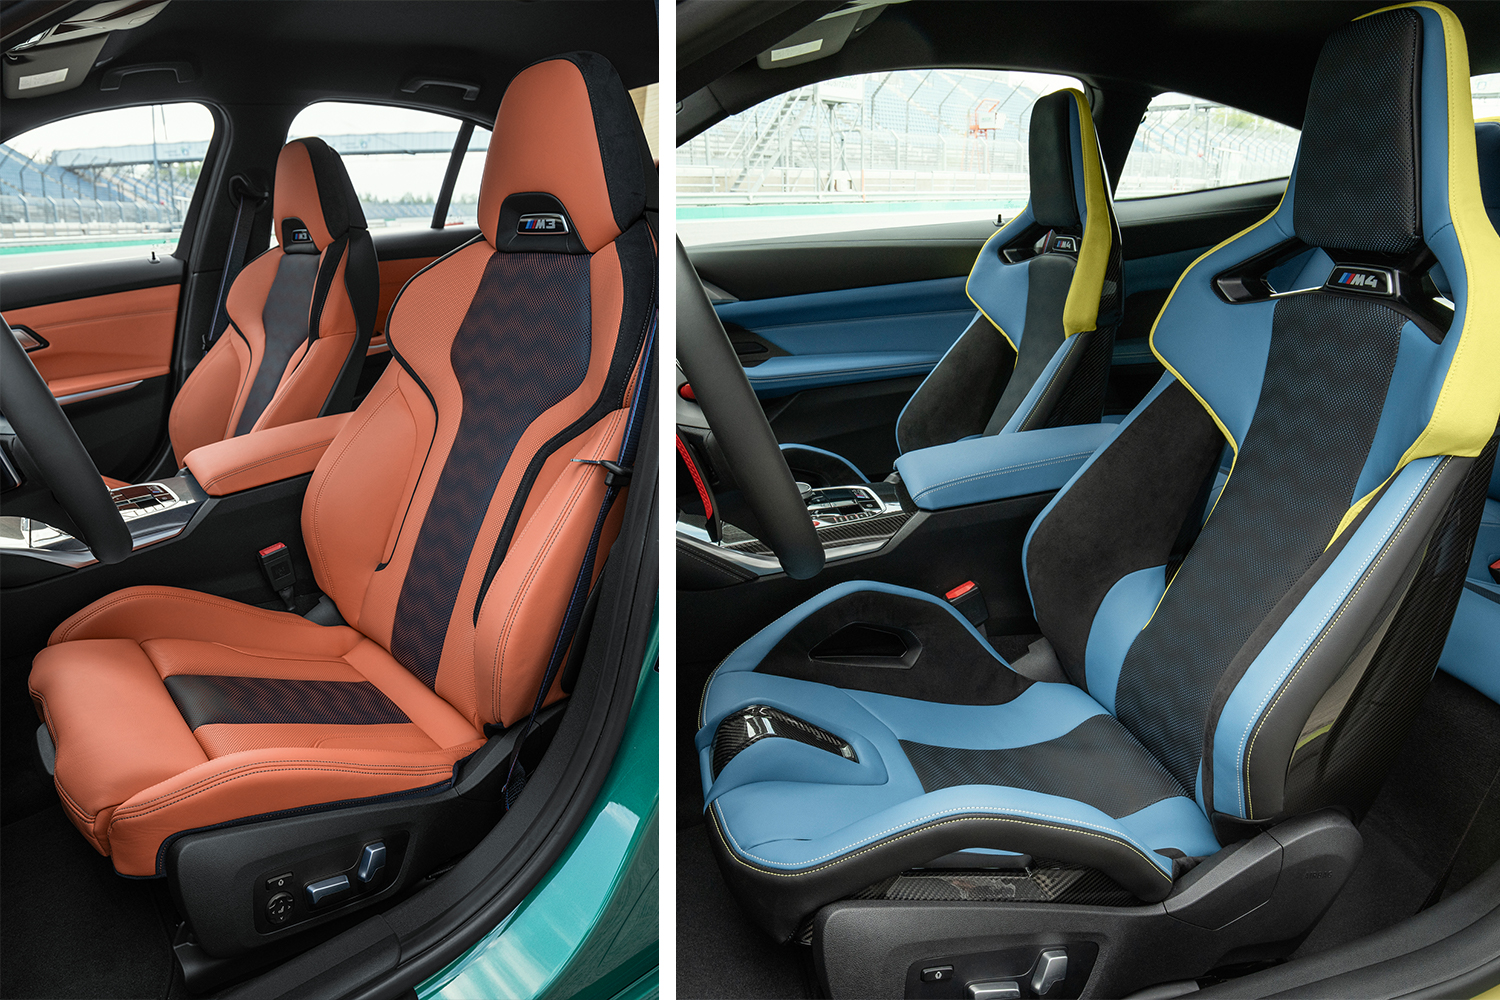 The front seats in the new 2021 BMW M3 Competition Sedan (left) next to the front seats in the new 2021 BMW M4 Competition Coupe (right), those on the right featuring a carbon fiber horn in between the driver's and passenger's legs